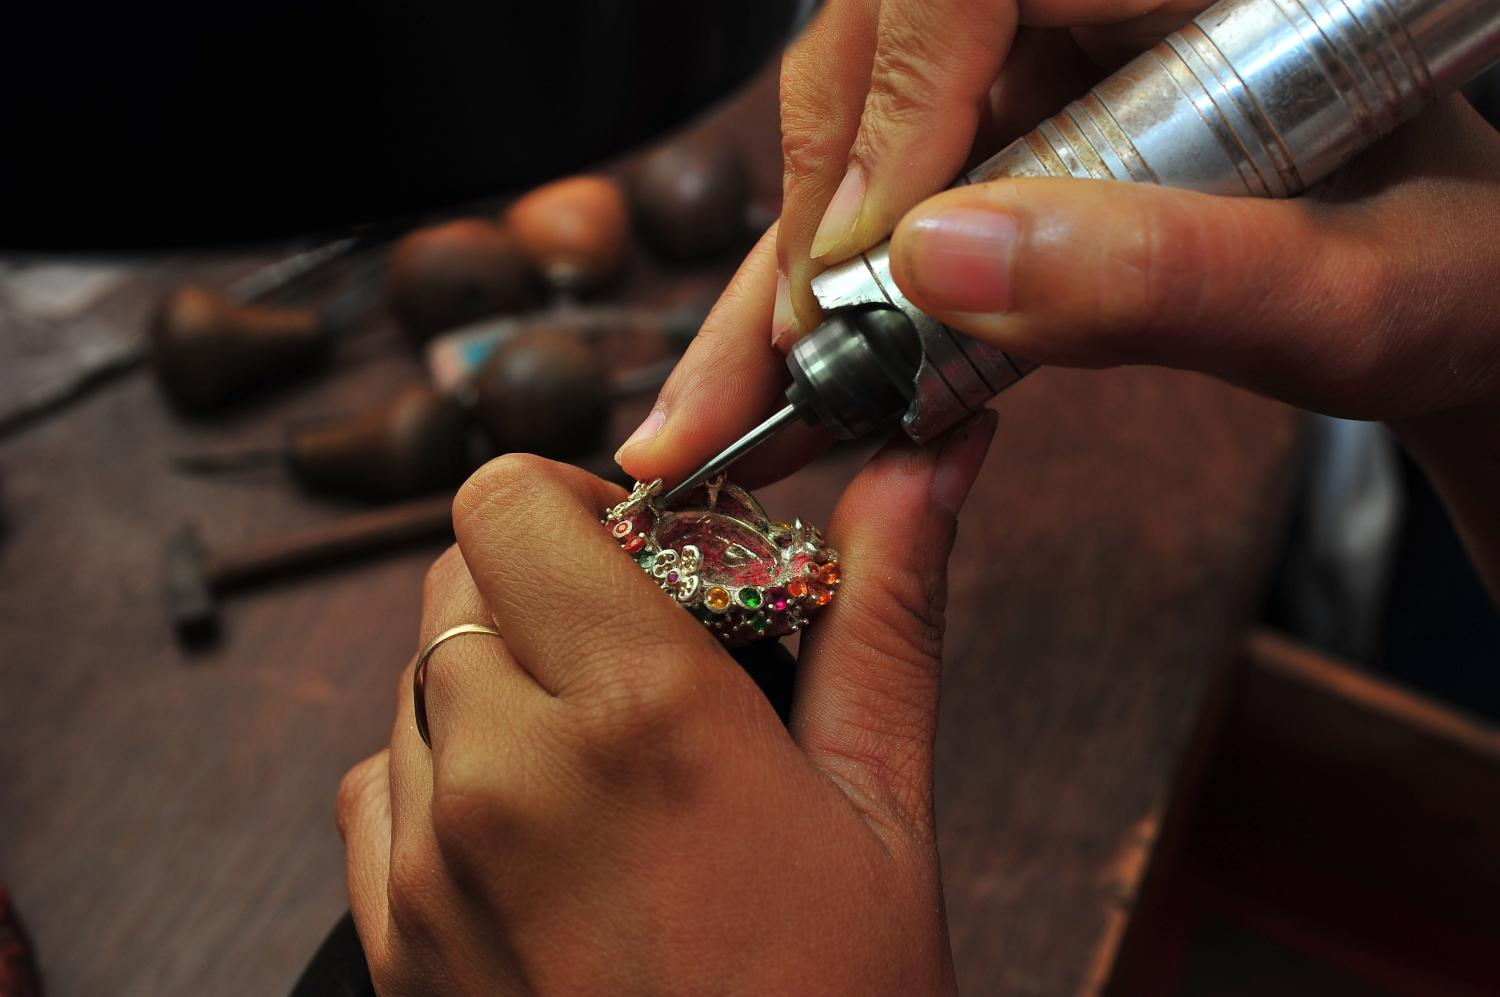 Chanthaburi's gems industry dates back centuries and remains one of the world's largest and liveliest. (Photo: TAT)